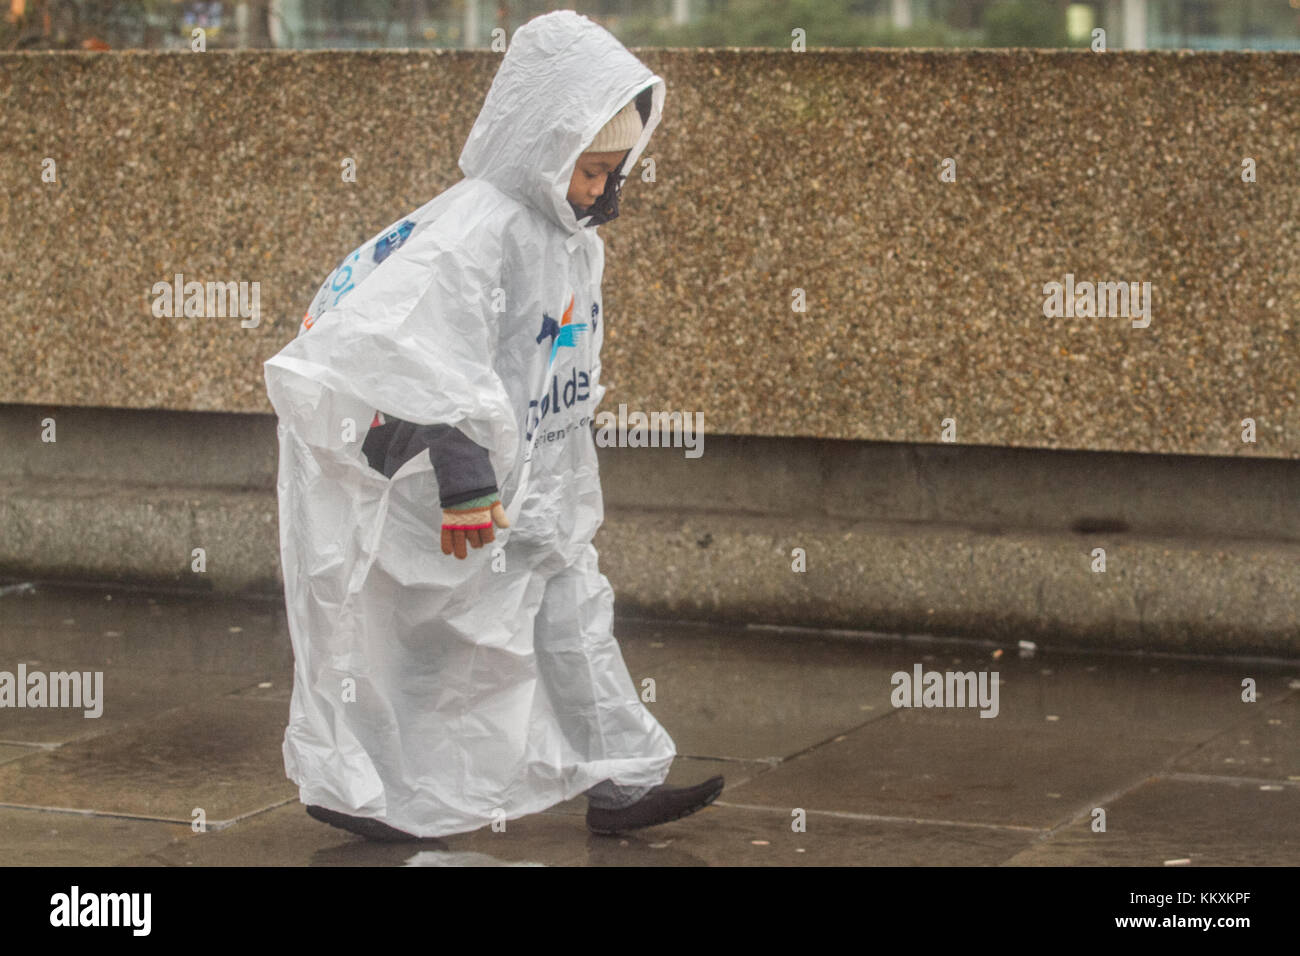 London, UK. 3rd Dec, 2017. Pedestrians wearing rain ponchos on Westminster on an ovecast wet day Credit: amer ghazzal/Alamy - Stock Image